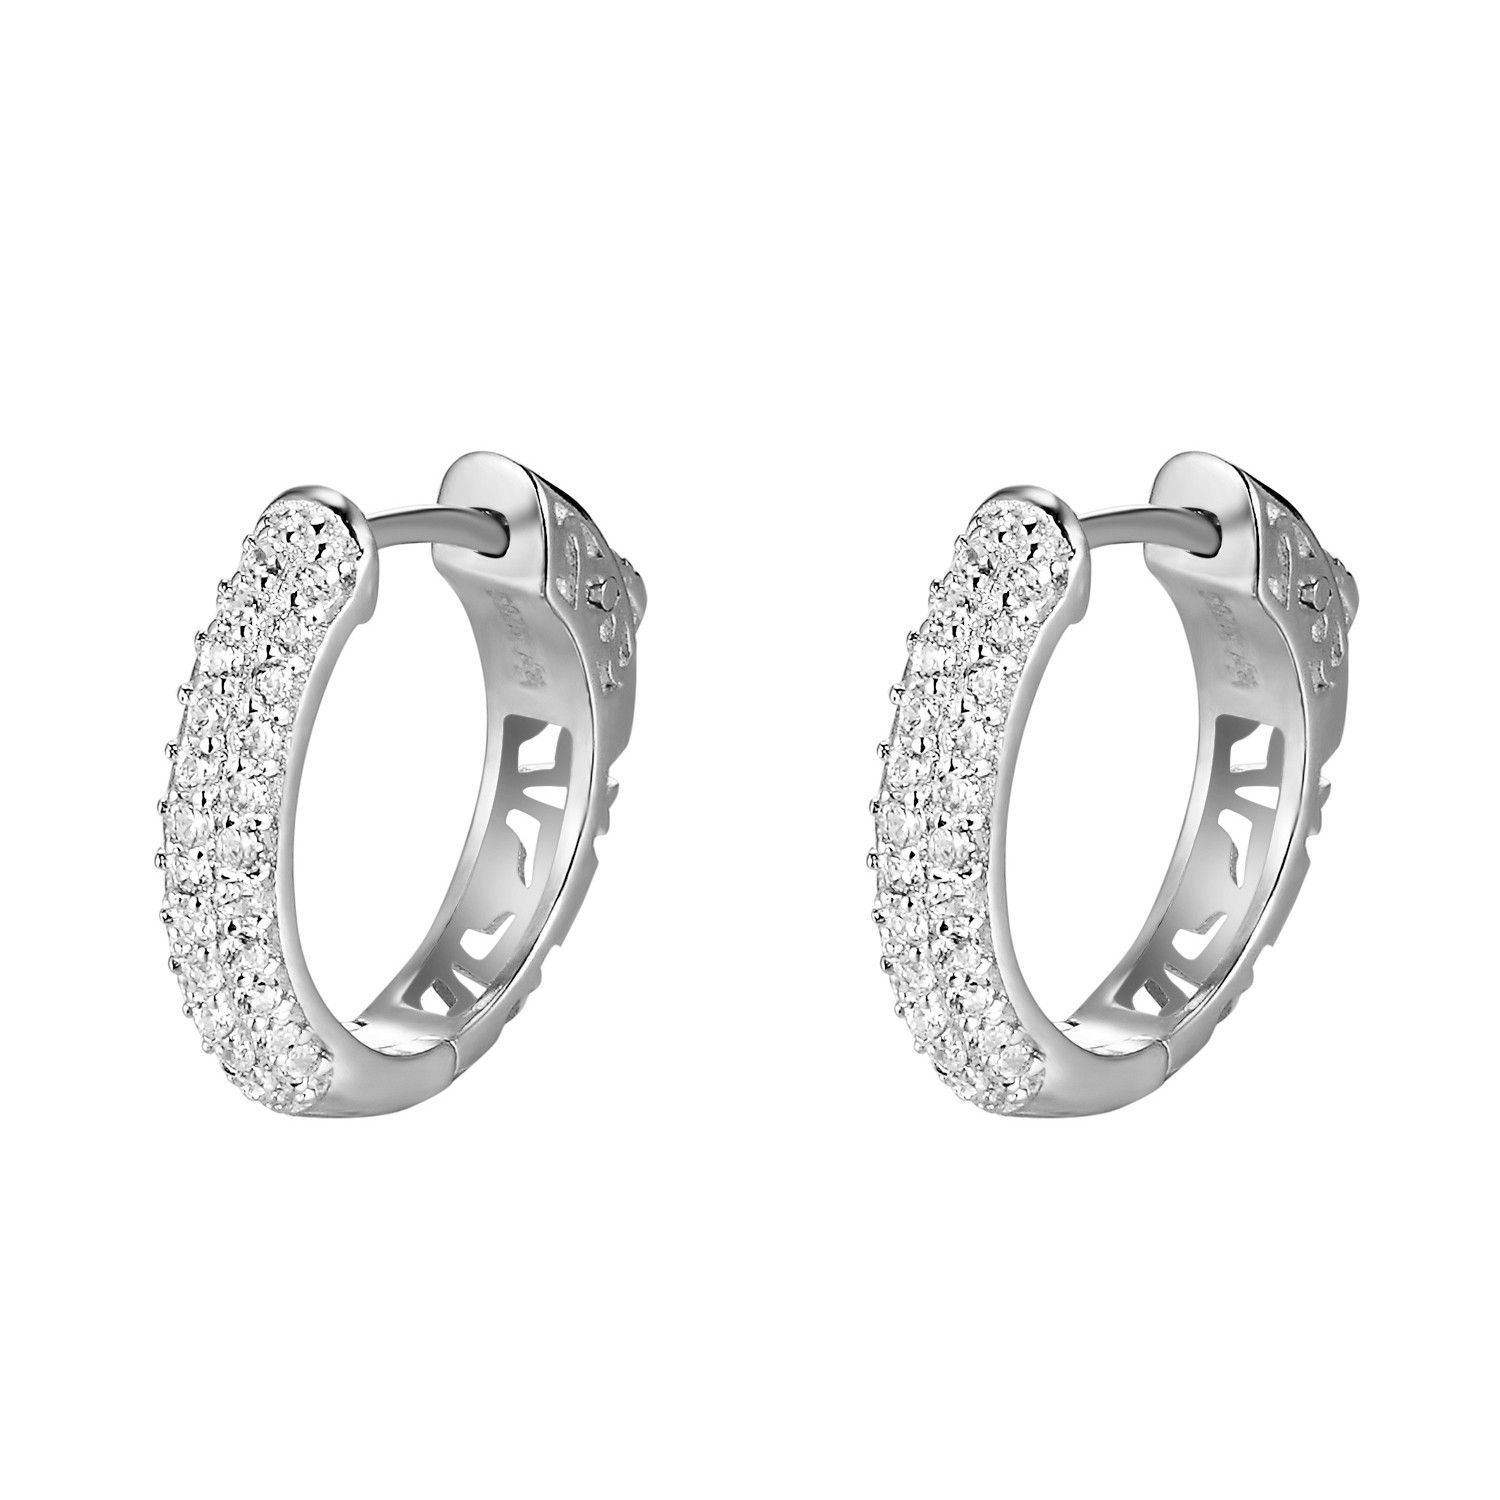 14k White Gold Finish over Sterling Silver 2 Row Micro pave Lab